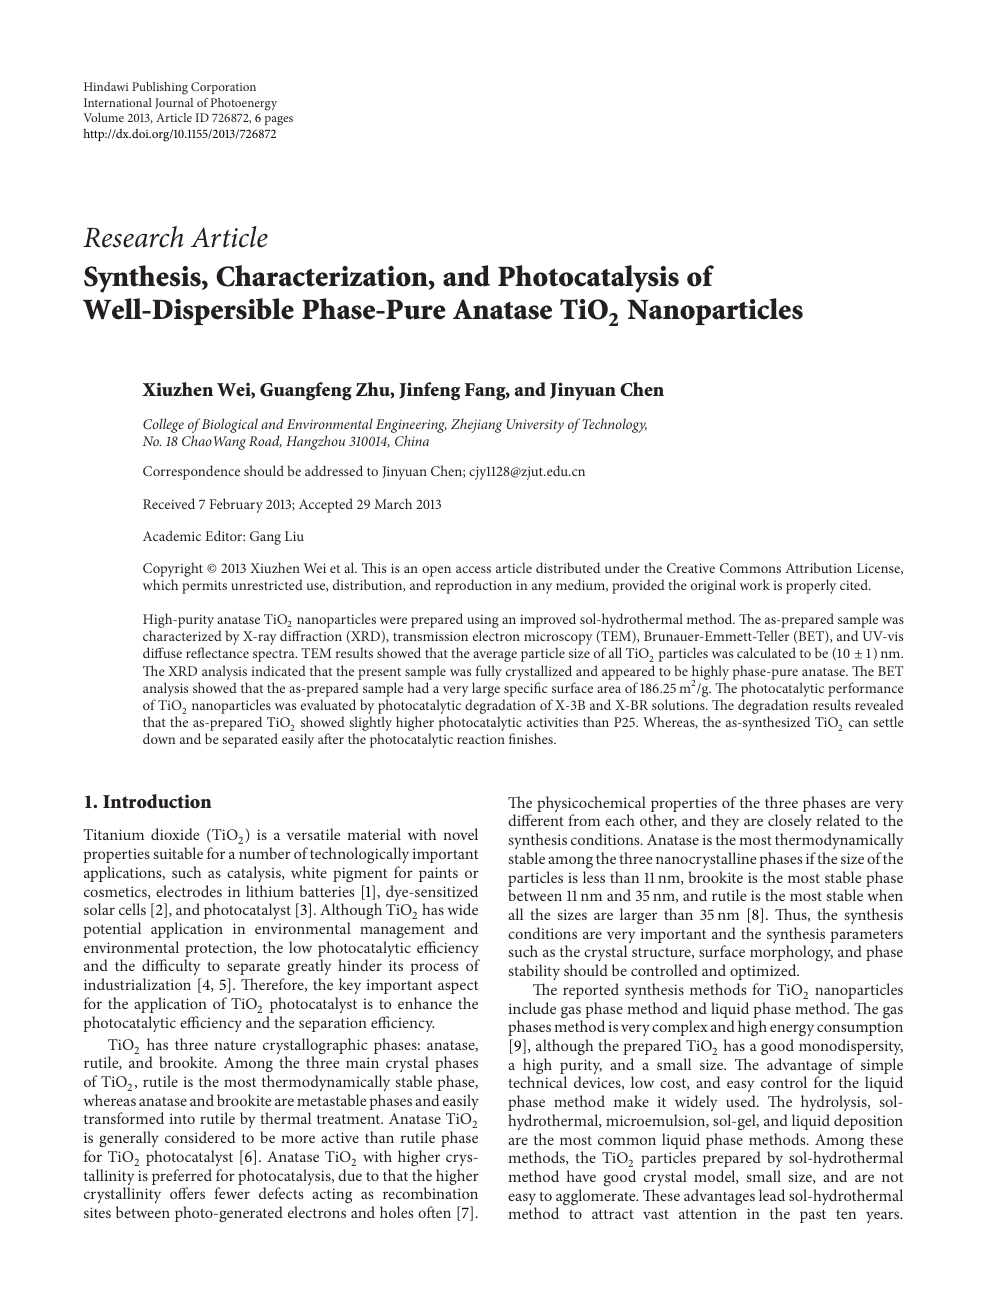 Synthesis, Characterization, and Photocatalysis of Well